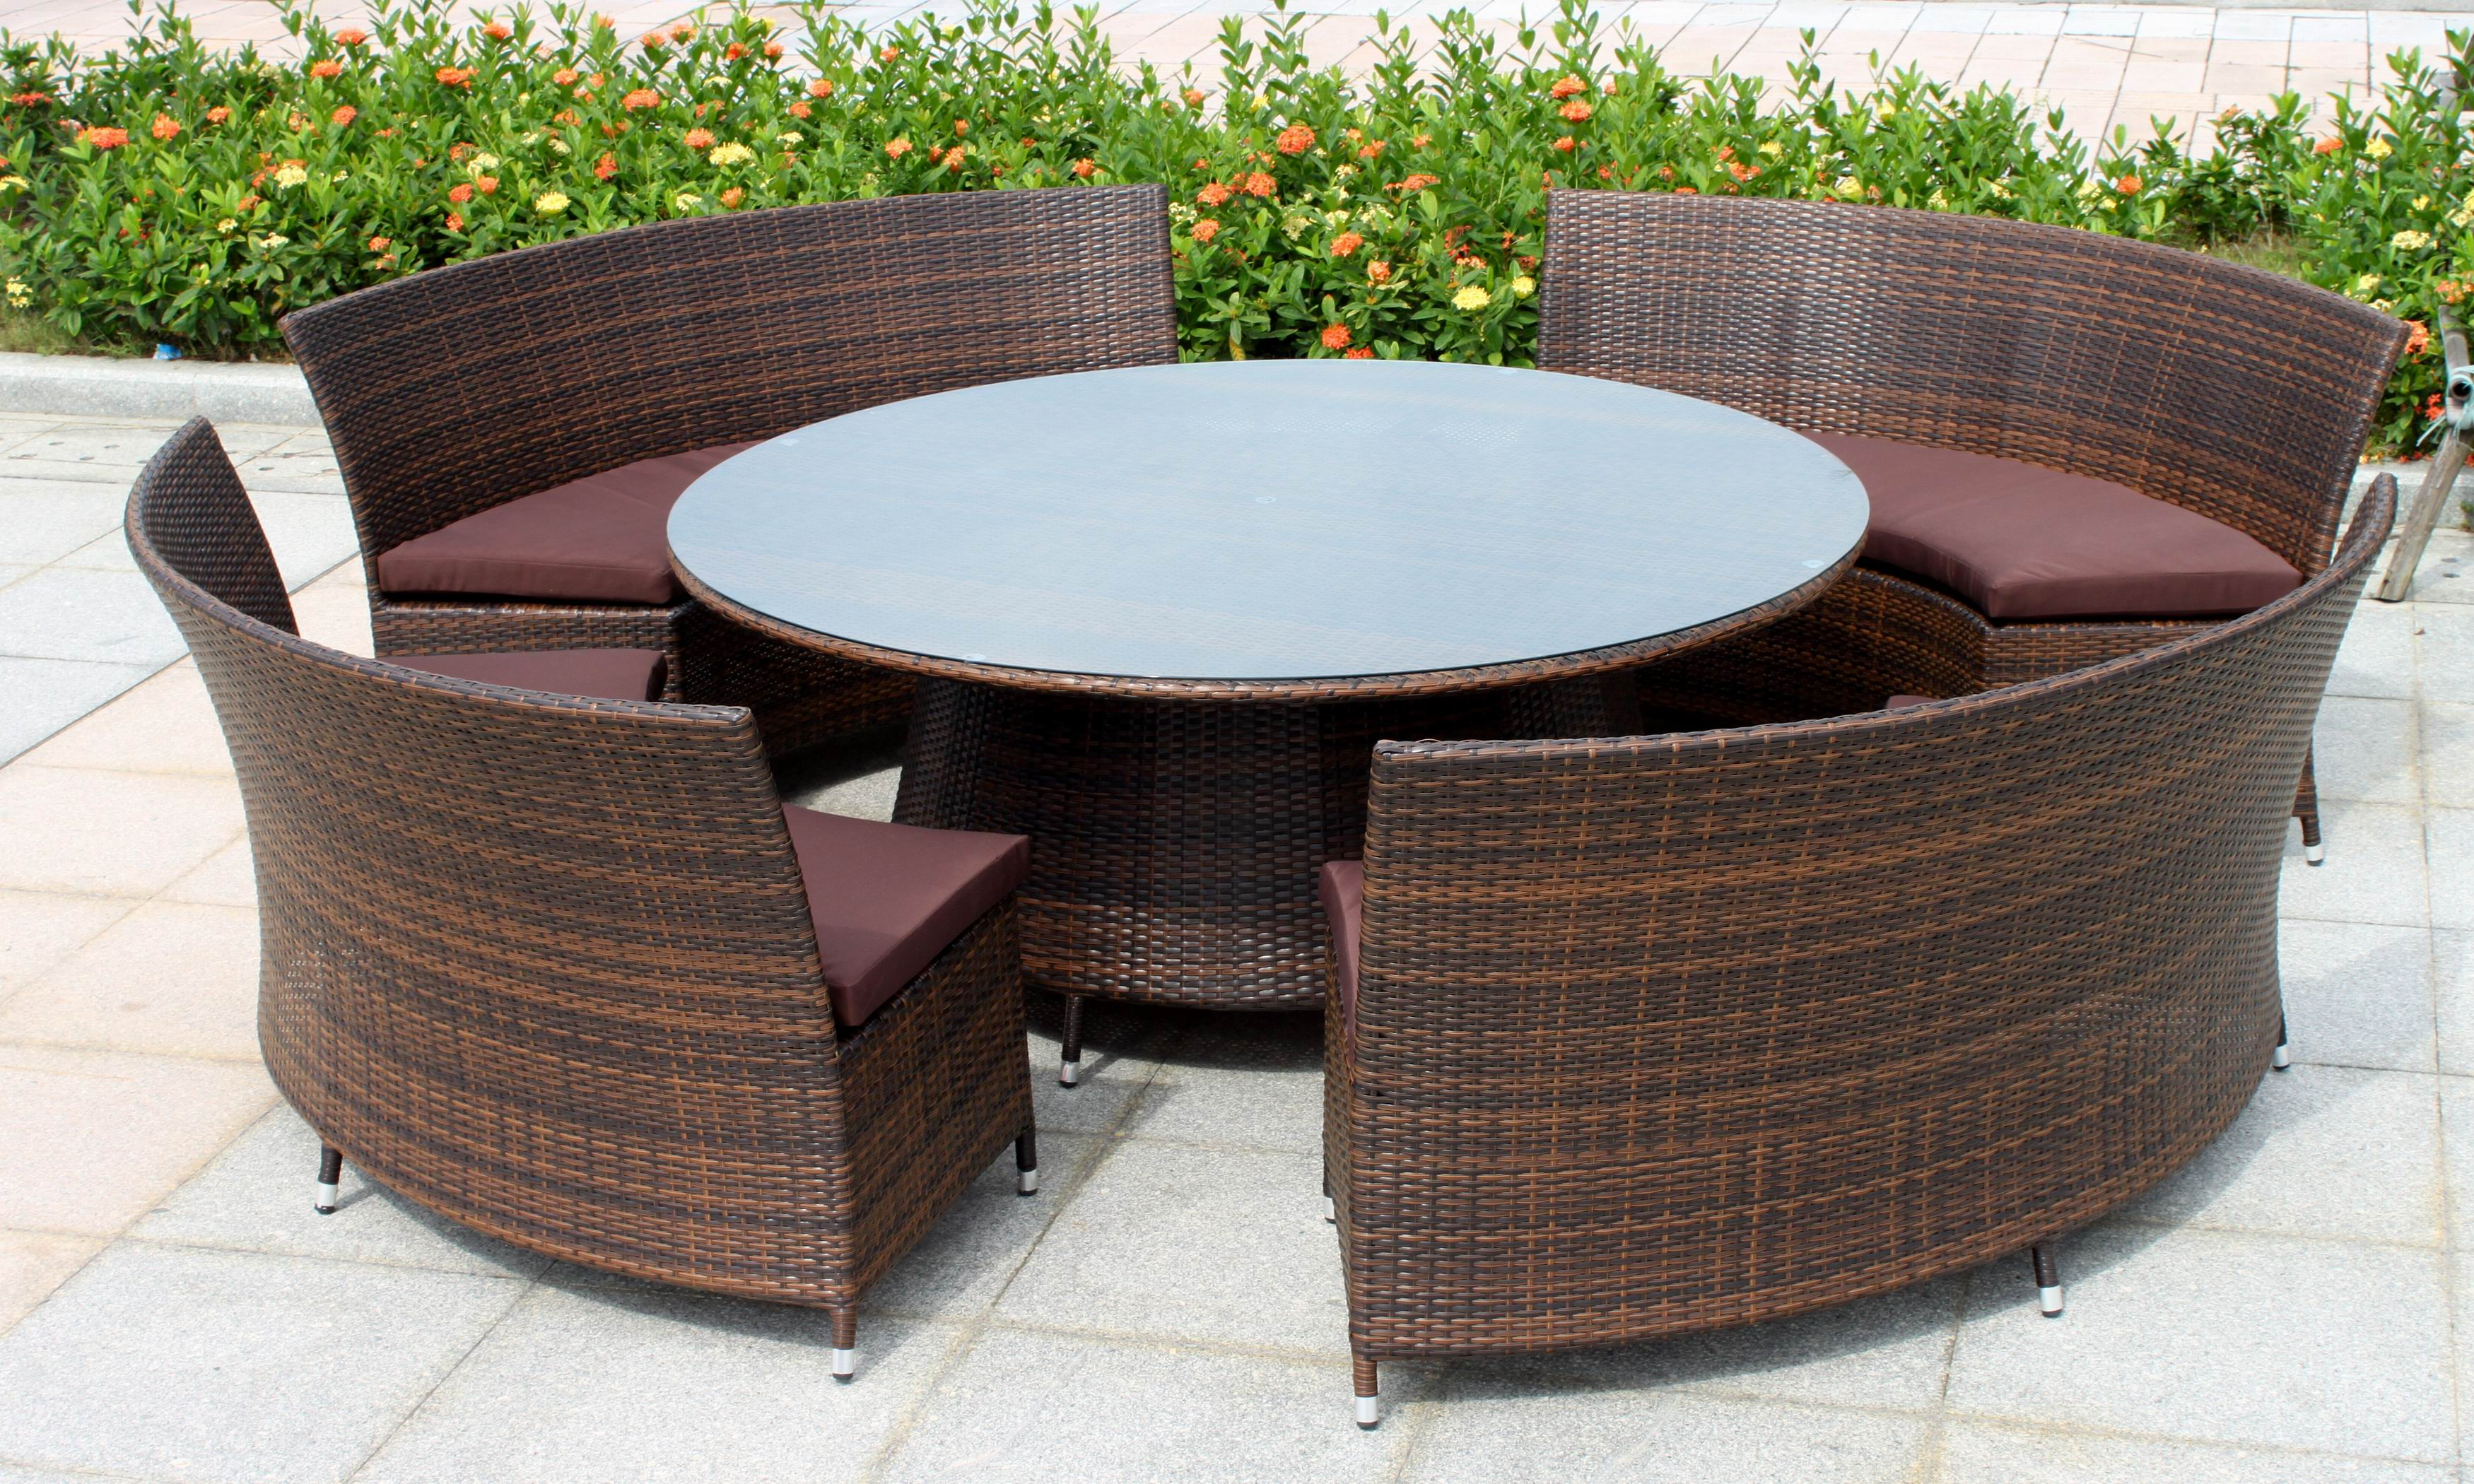 outdoor wicker furniture image of: wicker furniture set ONPALNE